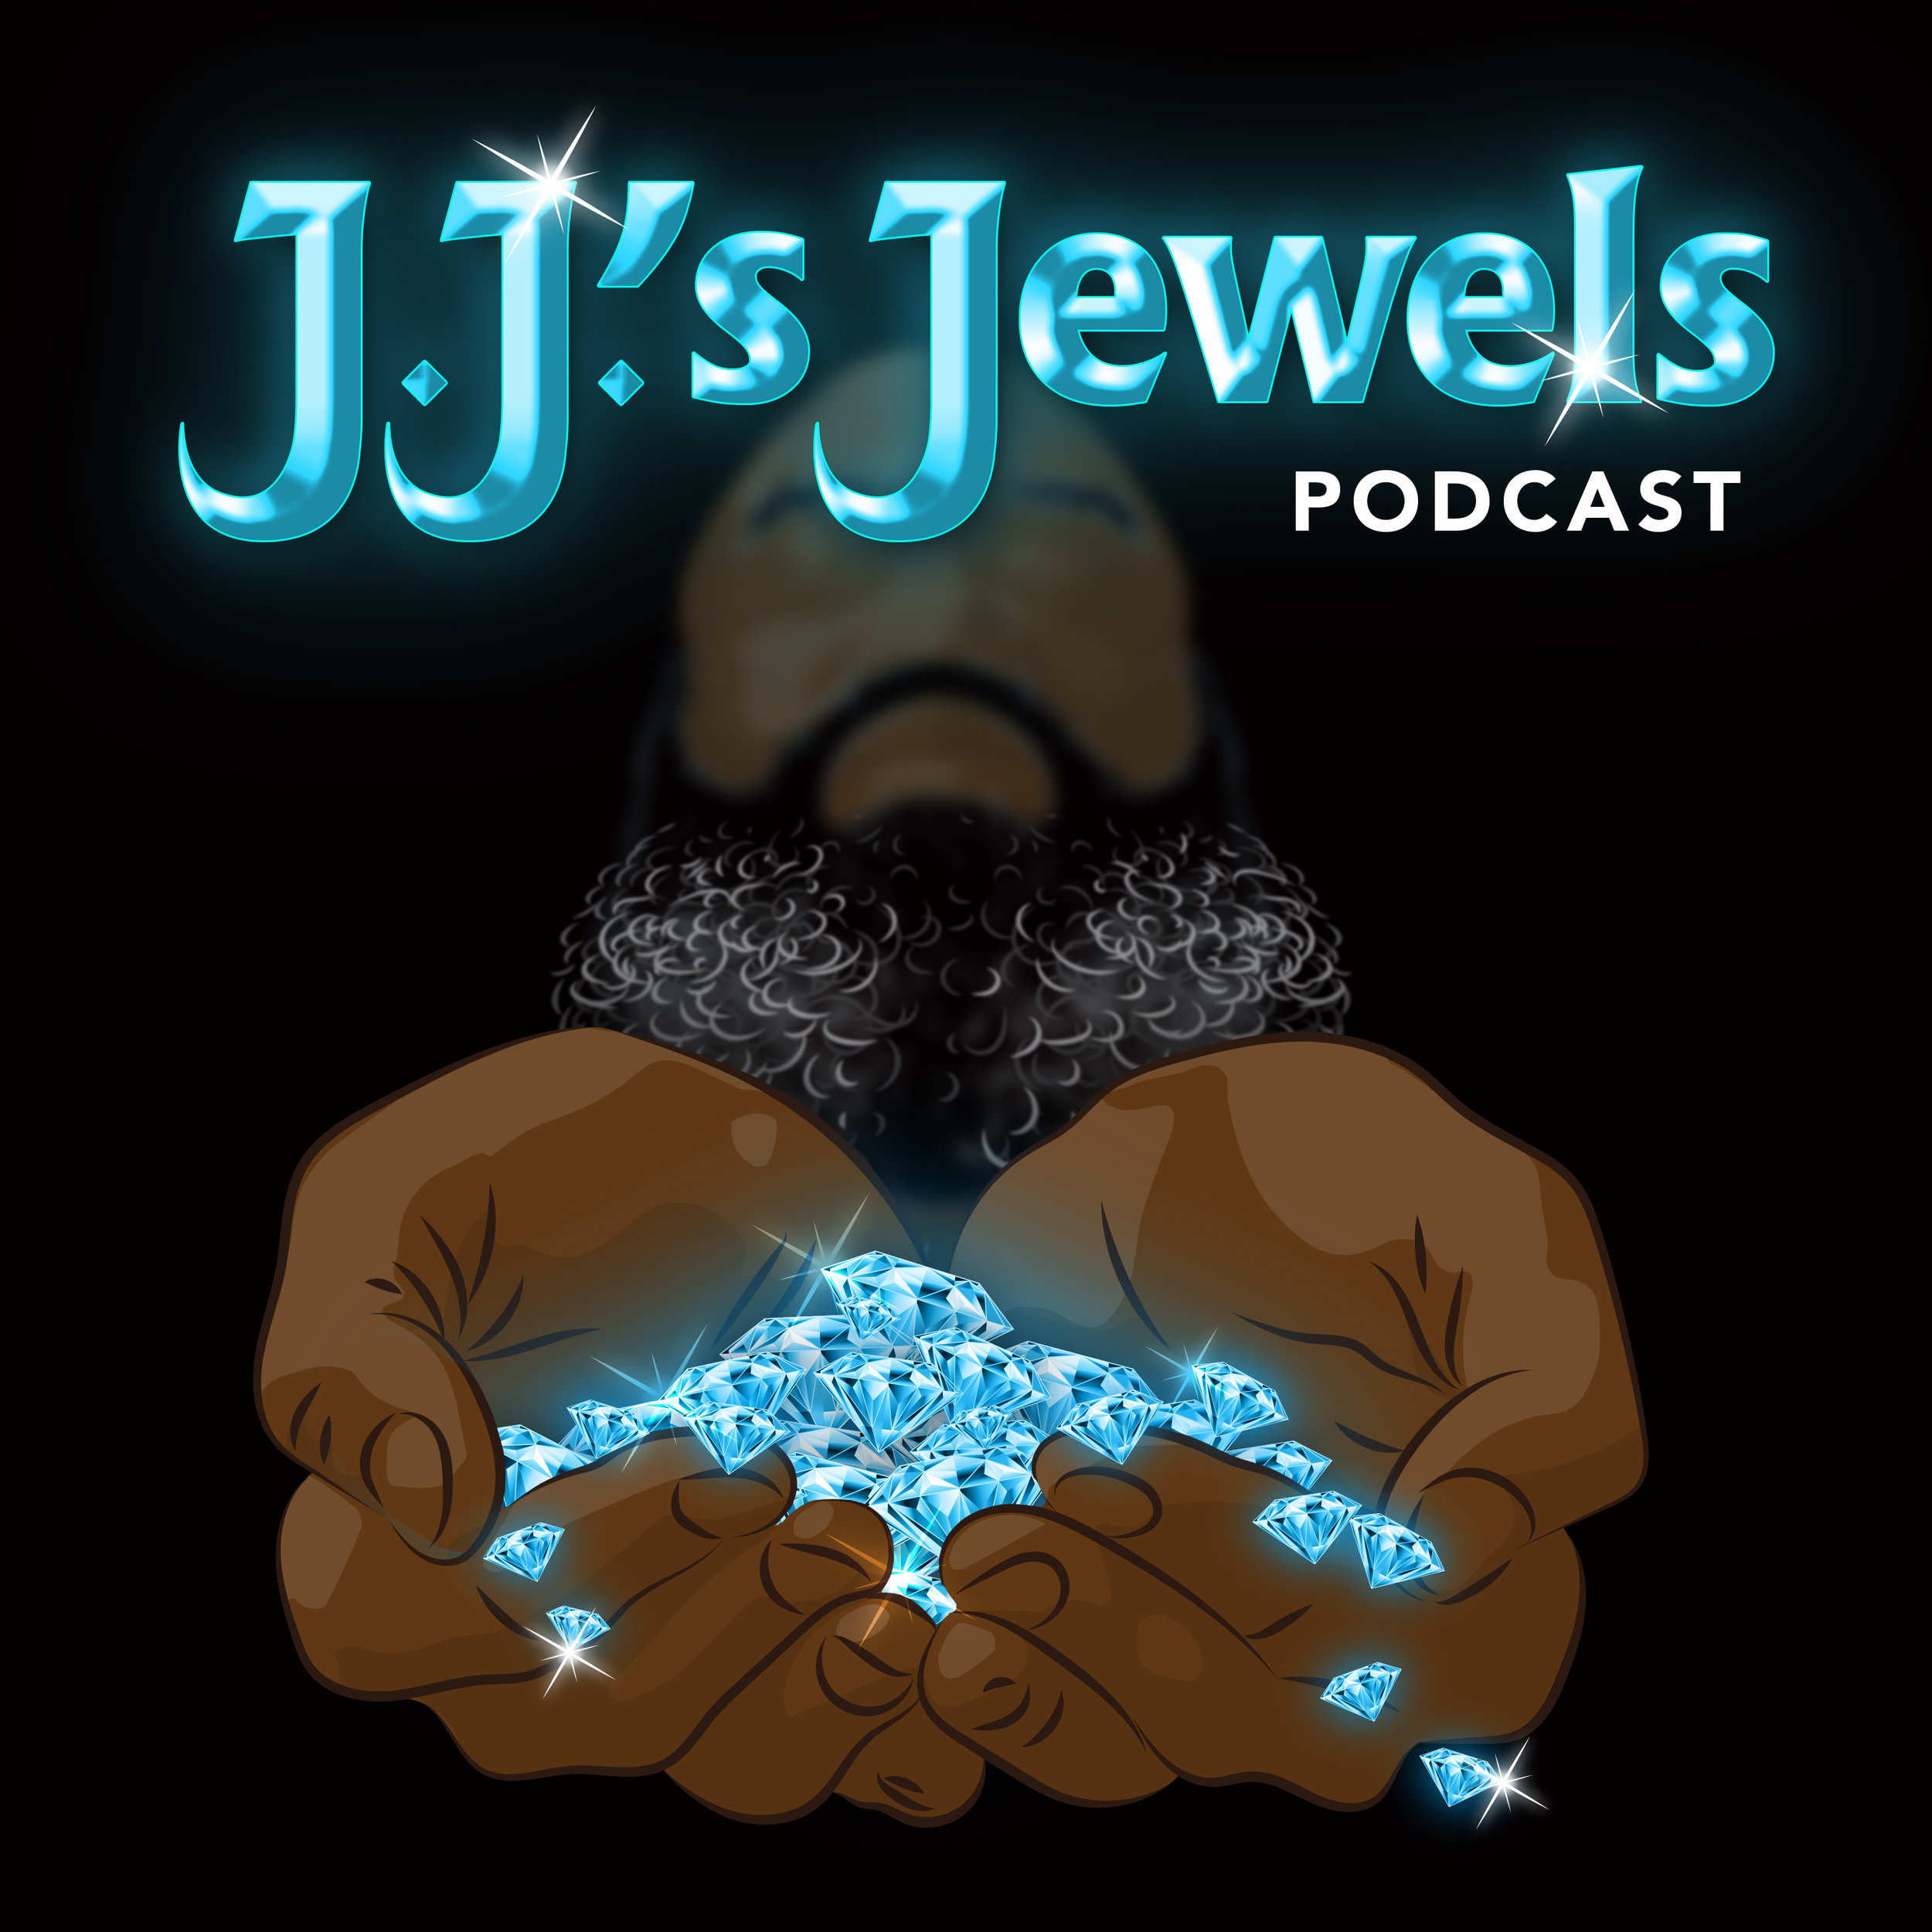 J.J.'s Jewels - hosted by J.J.J.J.'s Jewels is a podcast that delivers conversational jewels by putting pressure on the conversation. Whether he's talking one-on-one with his audience or chatting with a guest, his goal is to give his listeners valuable information that will inform, inspire, and empower, all while having fun.